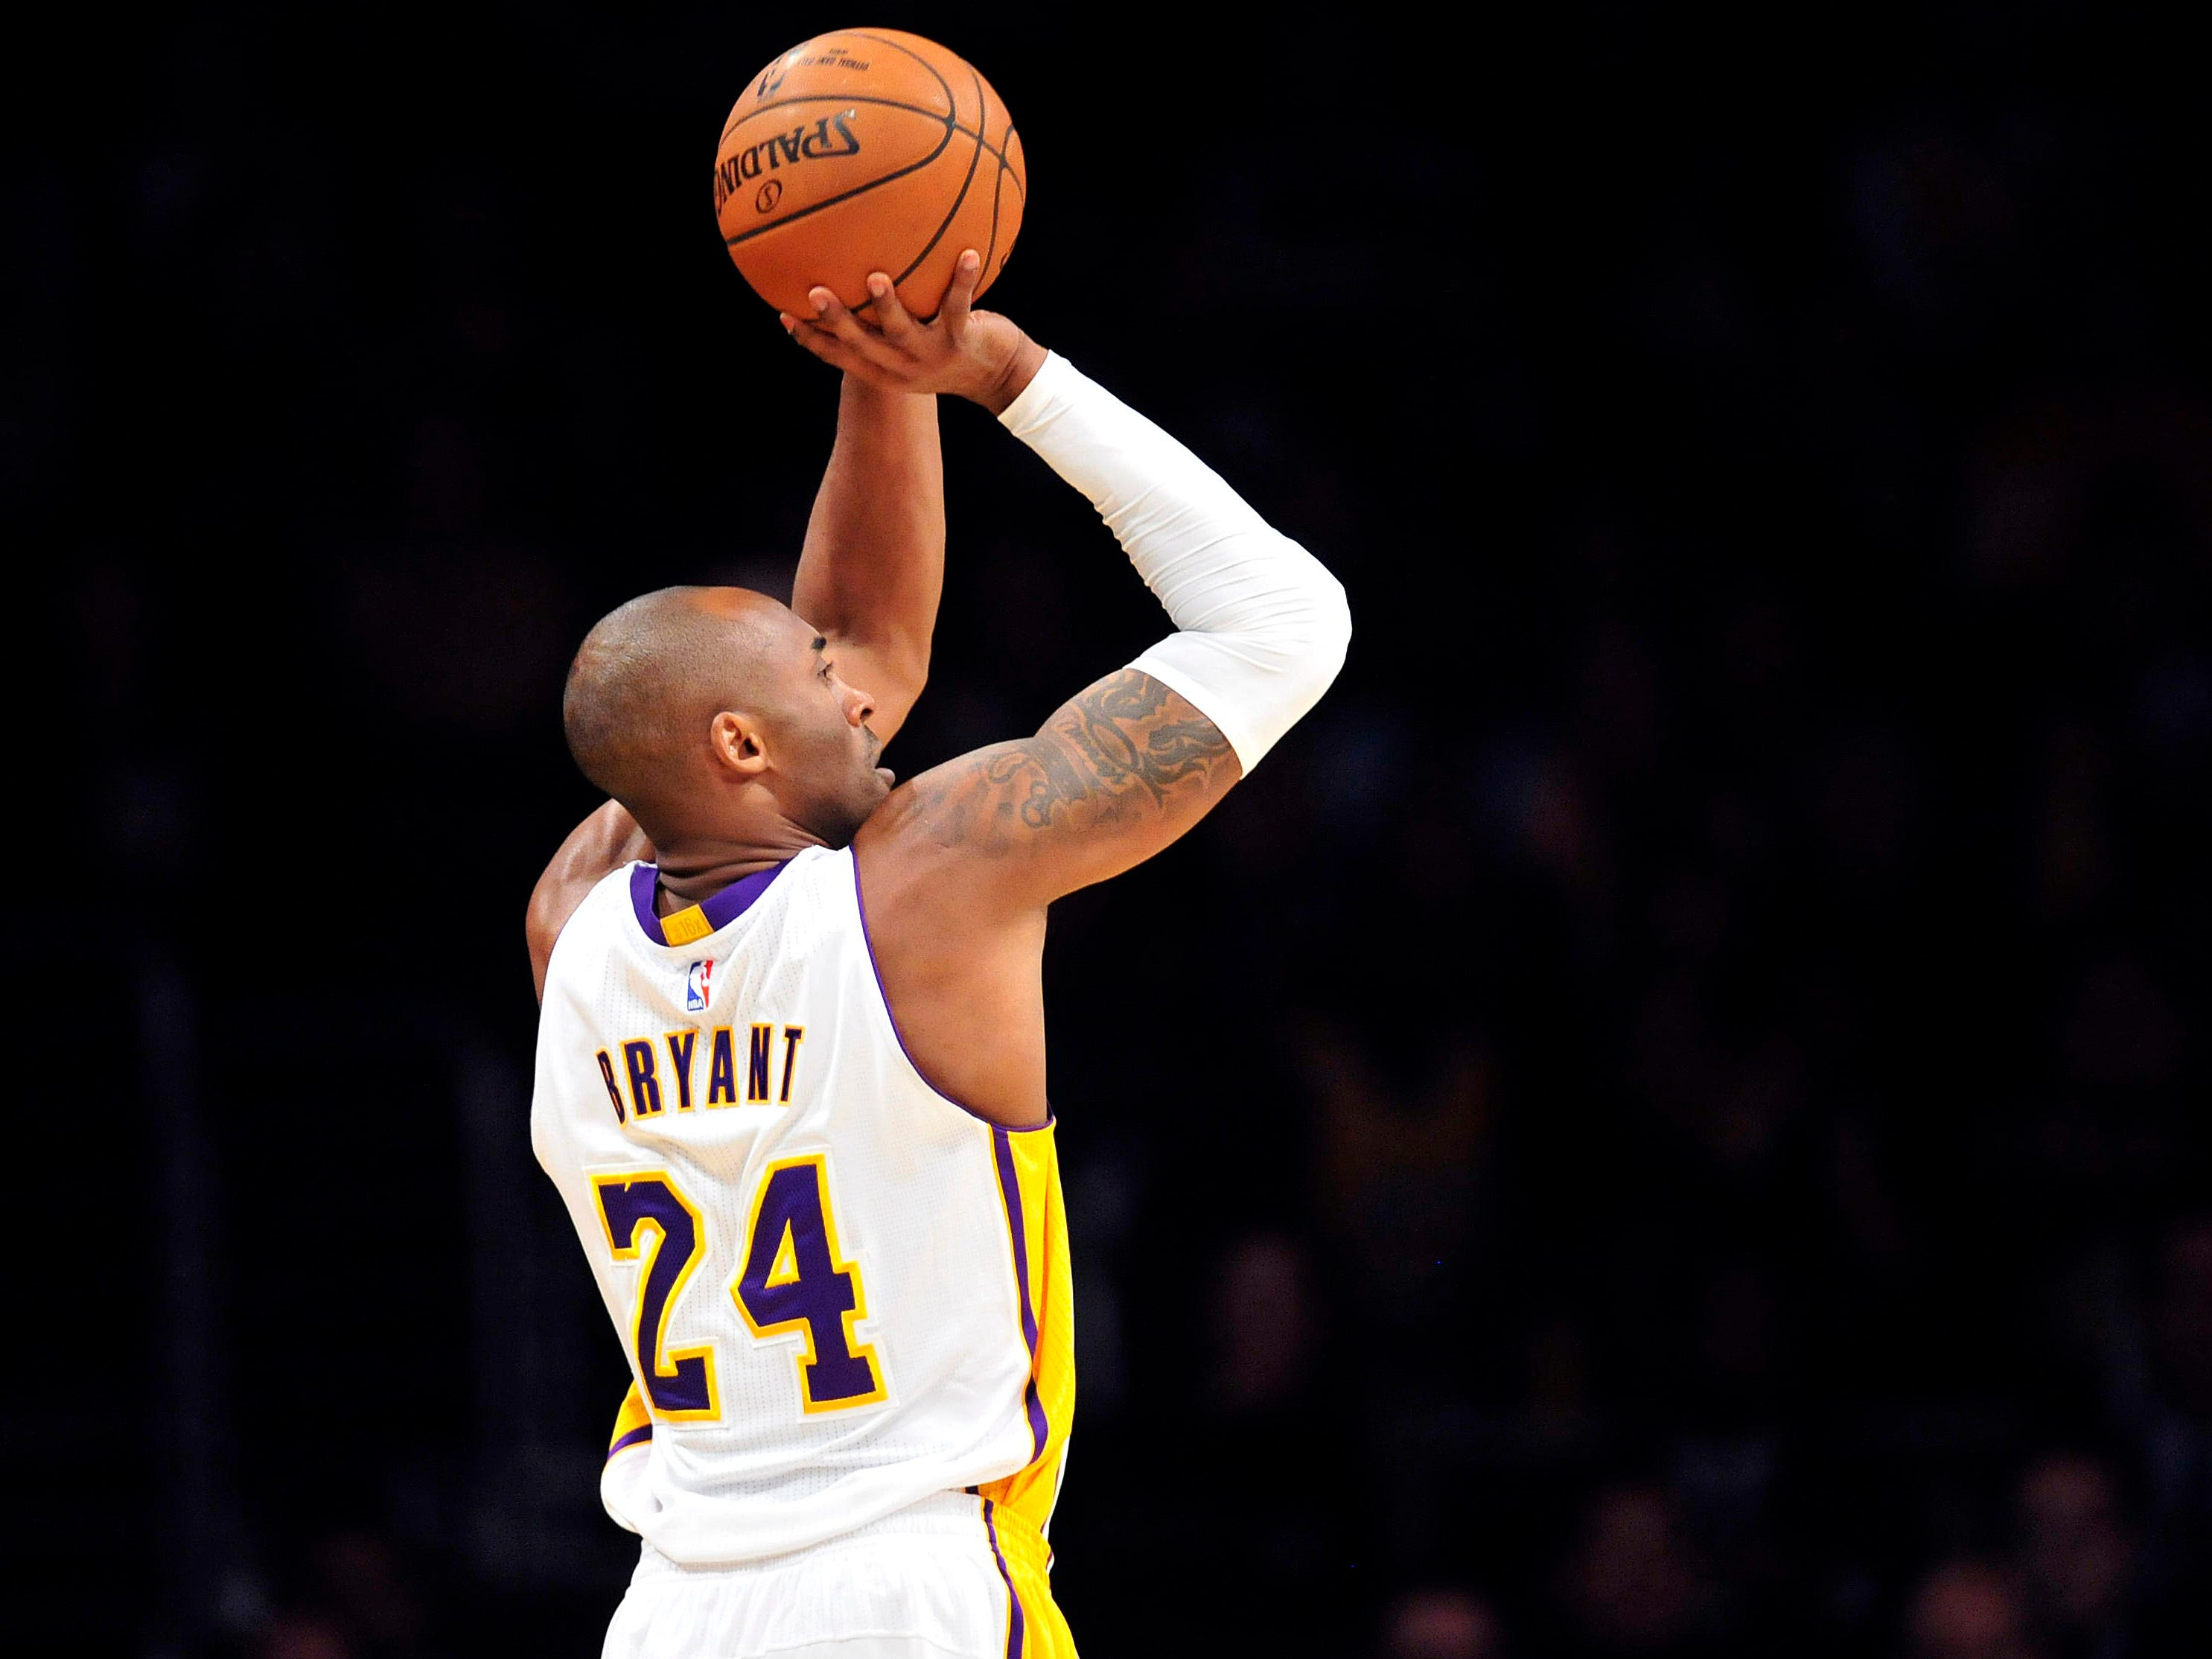 As of today, Kobe is third on the NBA All-Time scoring list, fourth on the postseason scoring list.